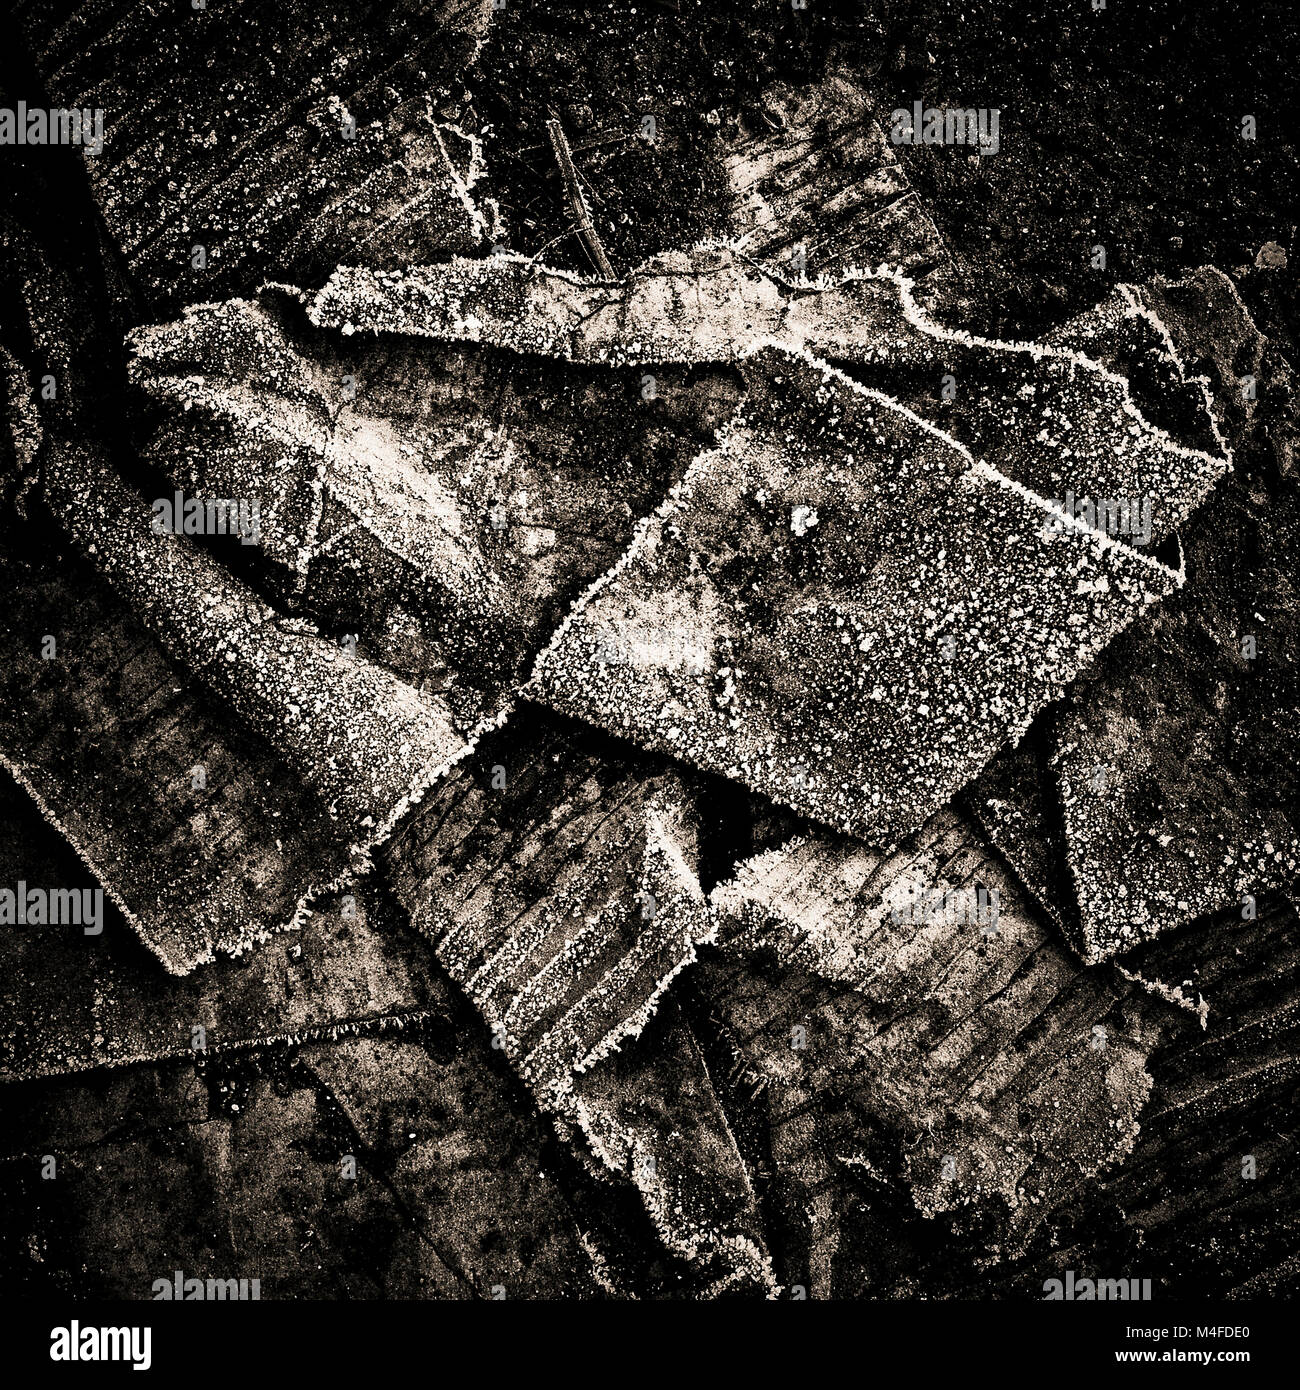 Paper in a landfill - Stock Image